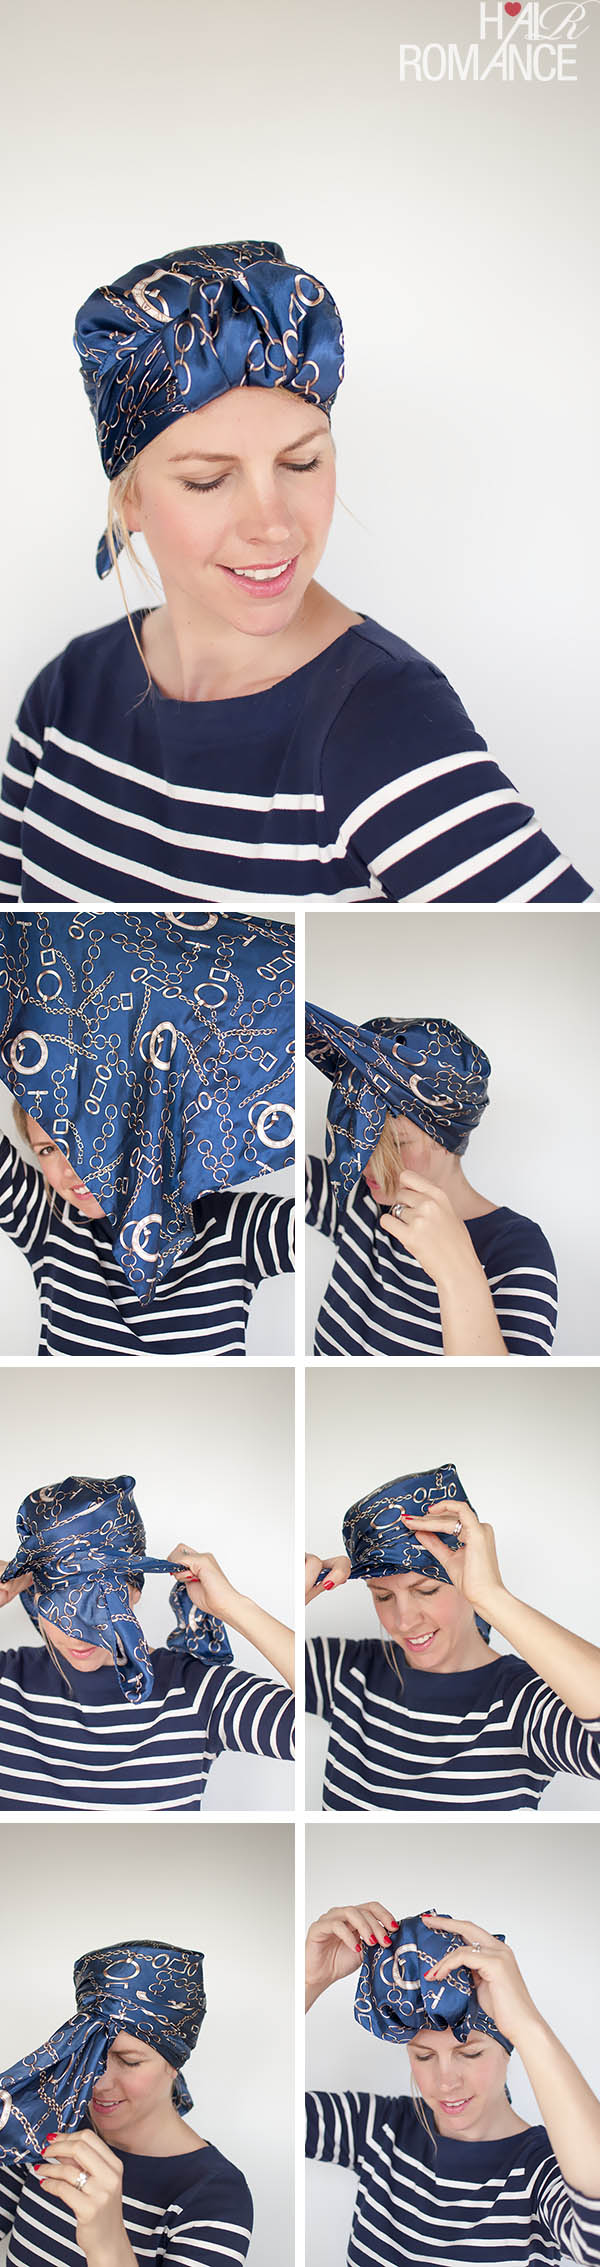 Hair Romance - Headscarf three ways - sleek urban turban